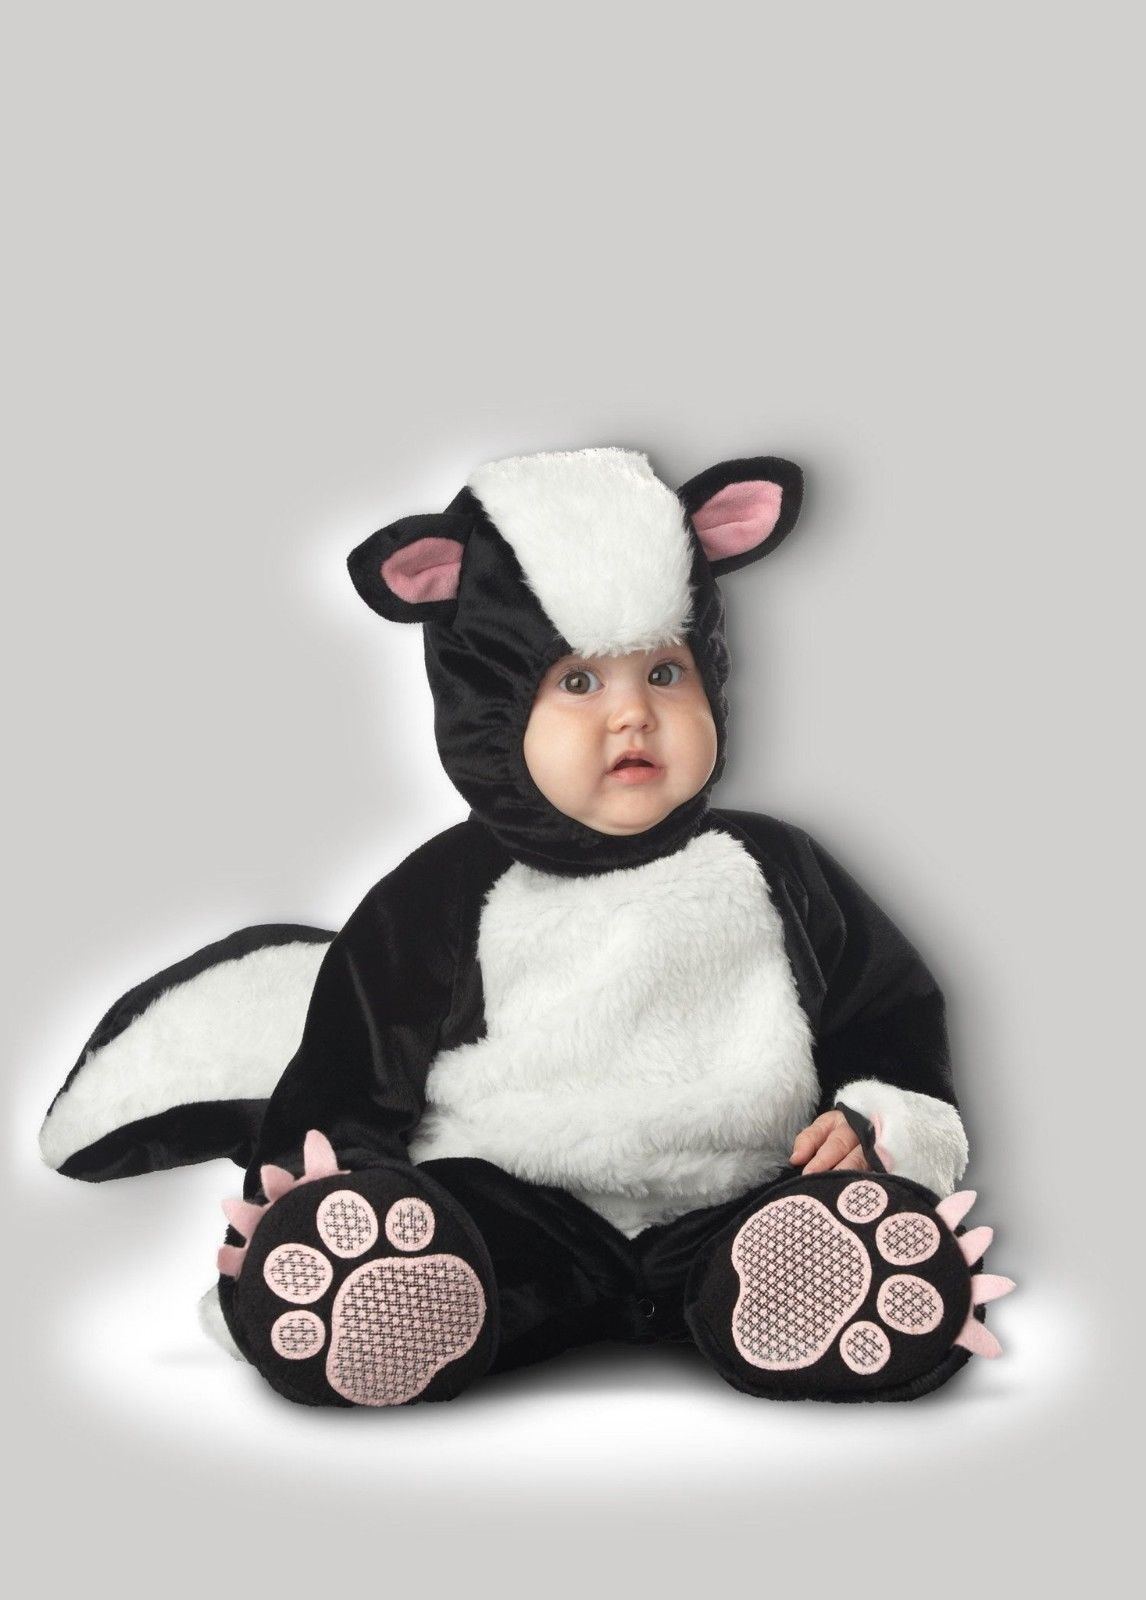 InCharacter Lil Stinker Skunk Furry Animals Infant Baby Halloween Costume 6004